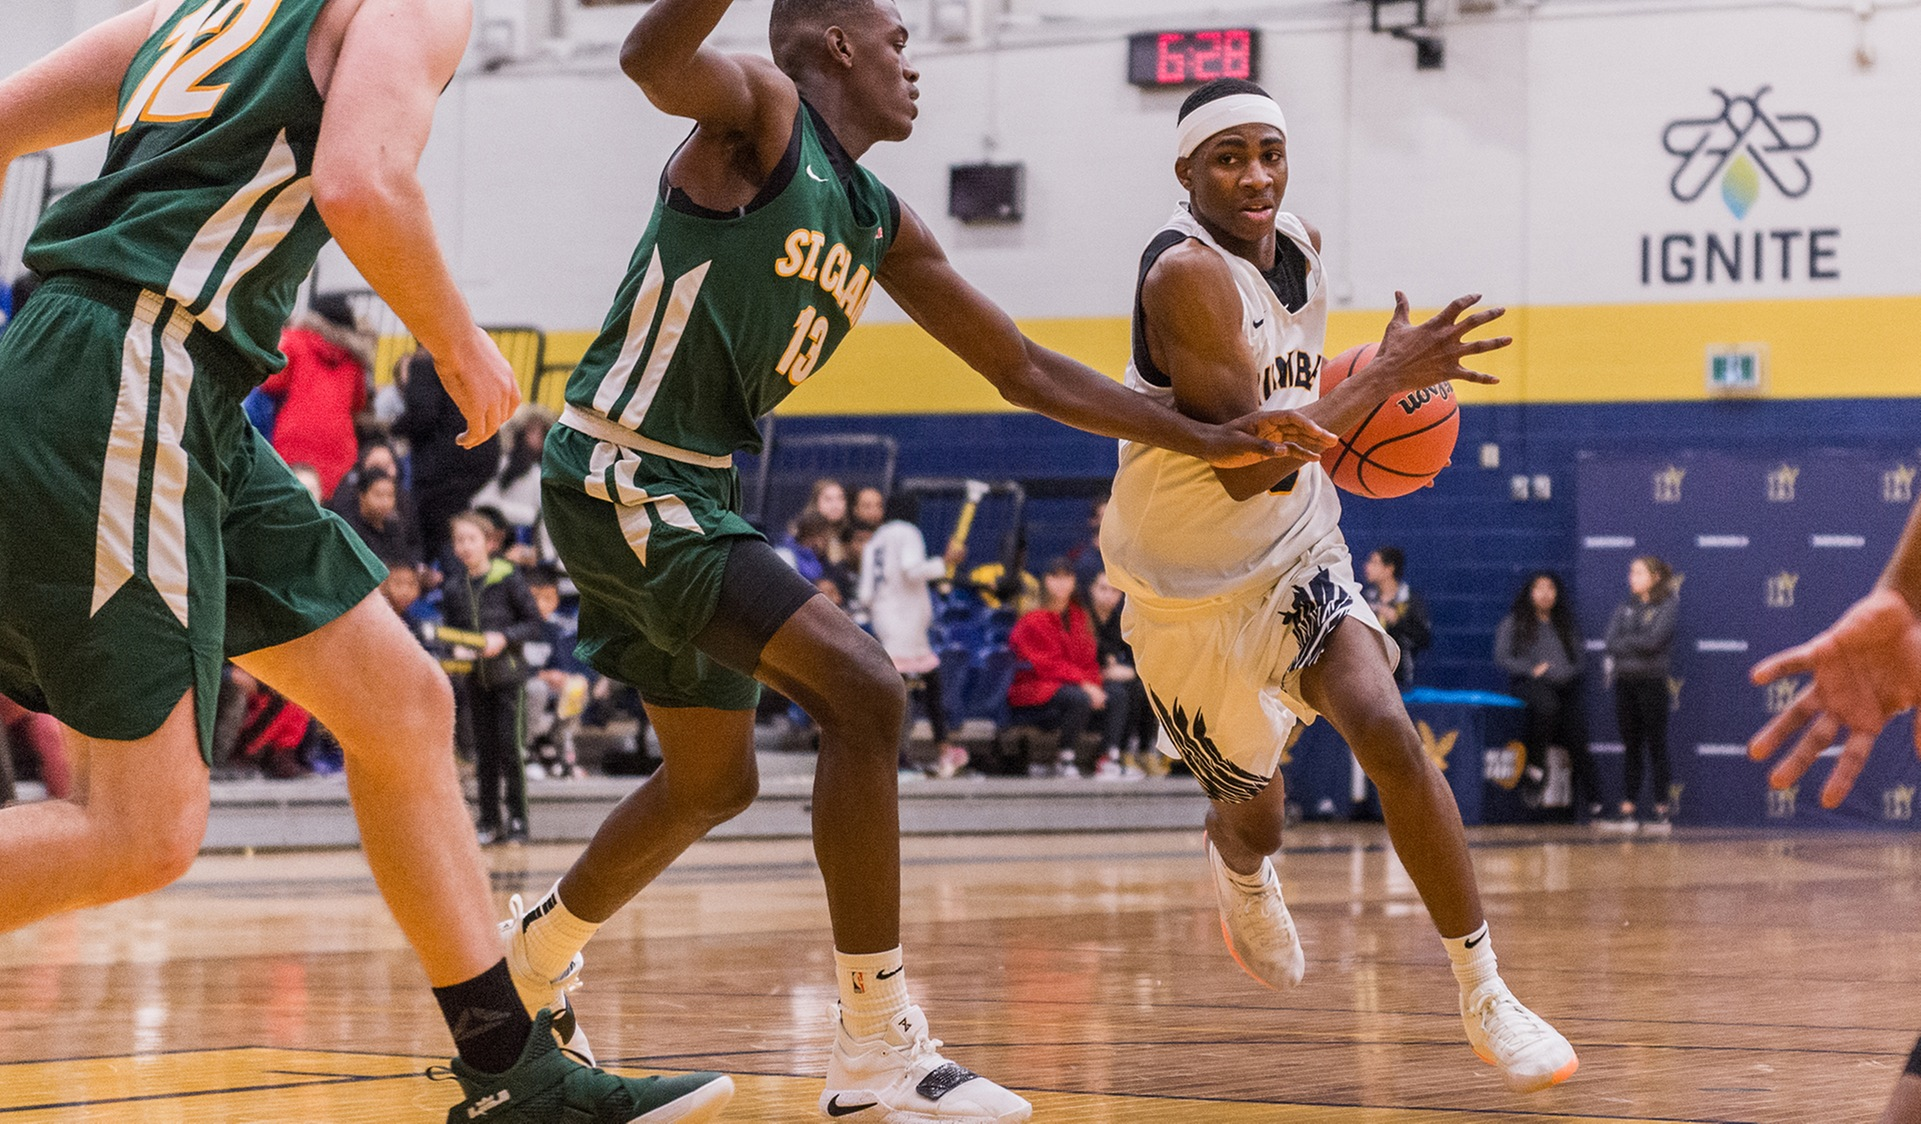 BALANCED ATTACK LEADS No. 3 MEN'S BASKETBALL PAST ST. CLAIR, 100-71